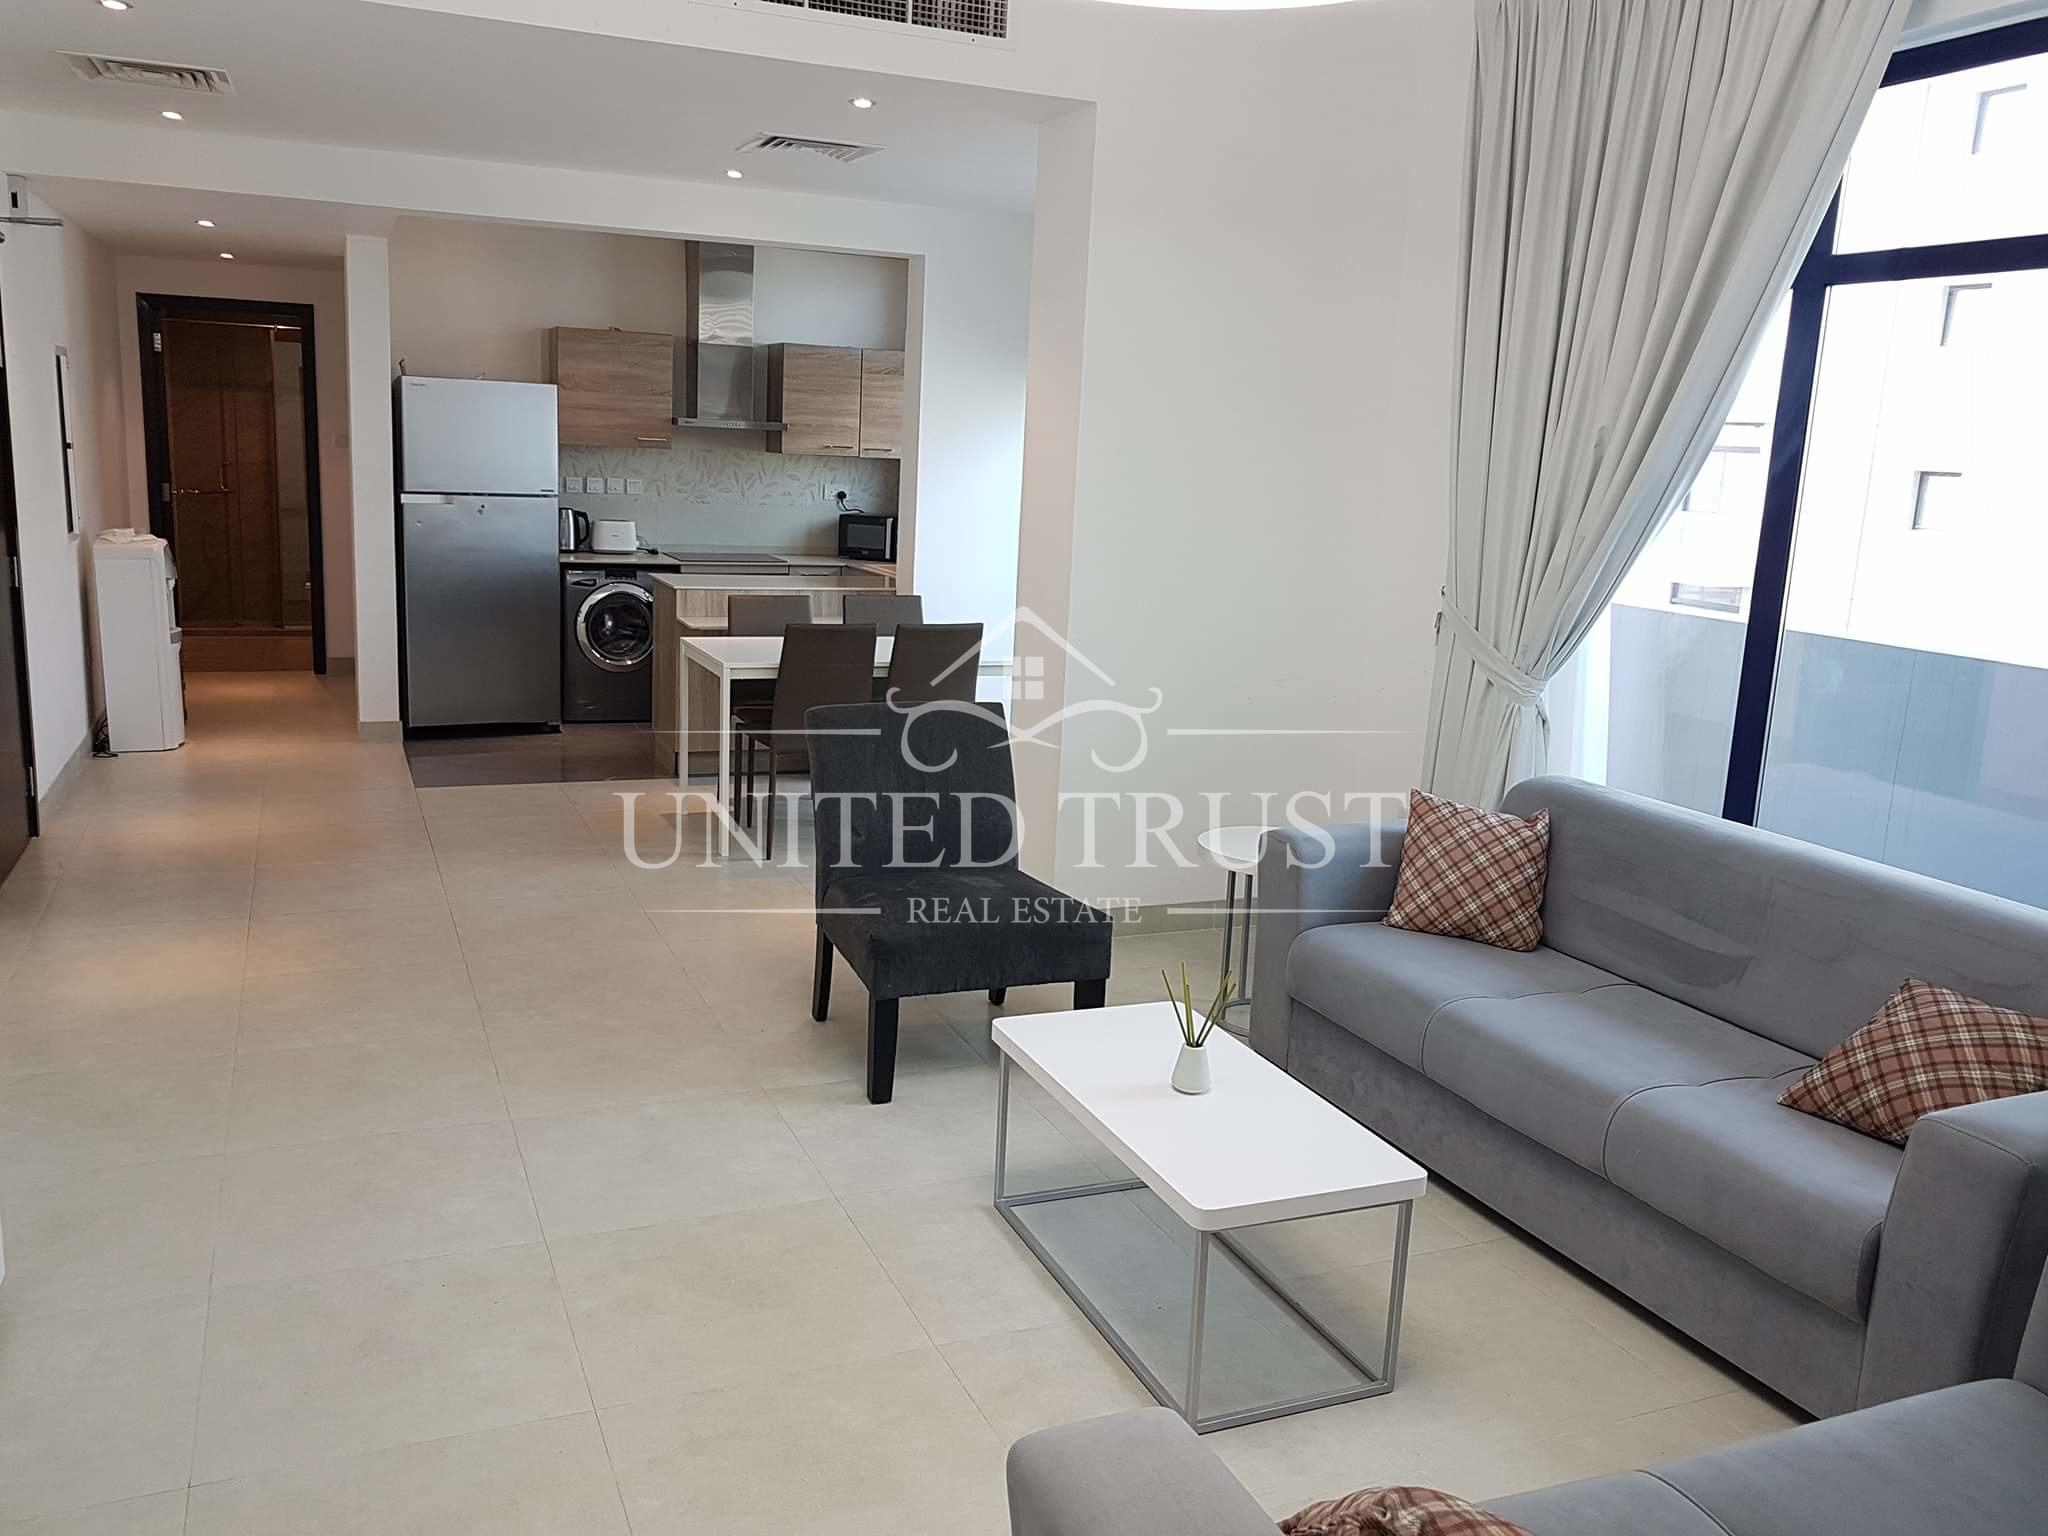 Fully furnished new apartment at Nasmah Star, Juffair near Al Jazira supermarket Ref: JUF-MB-011